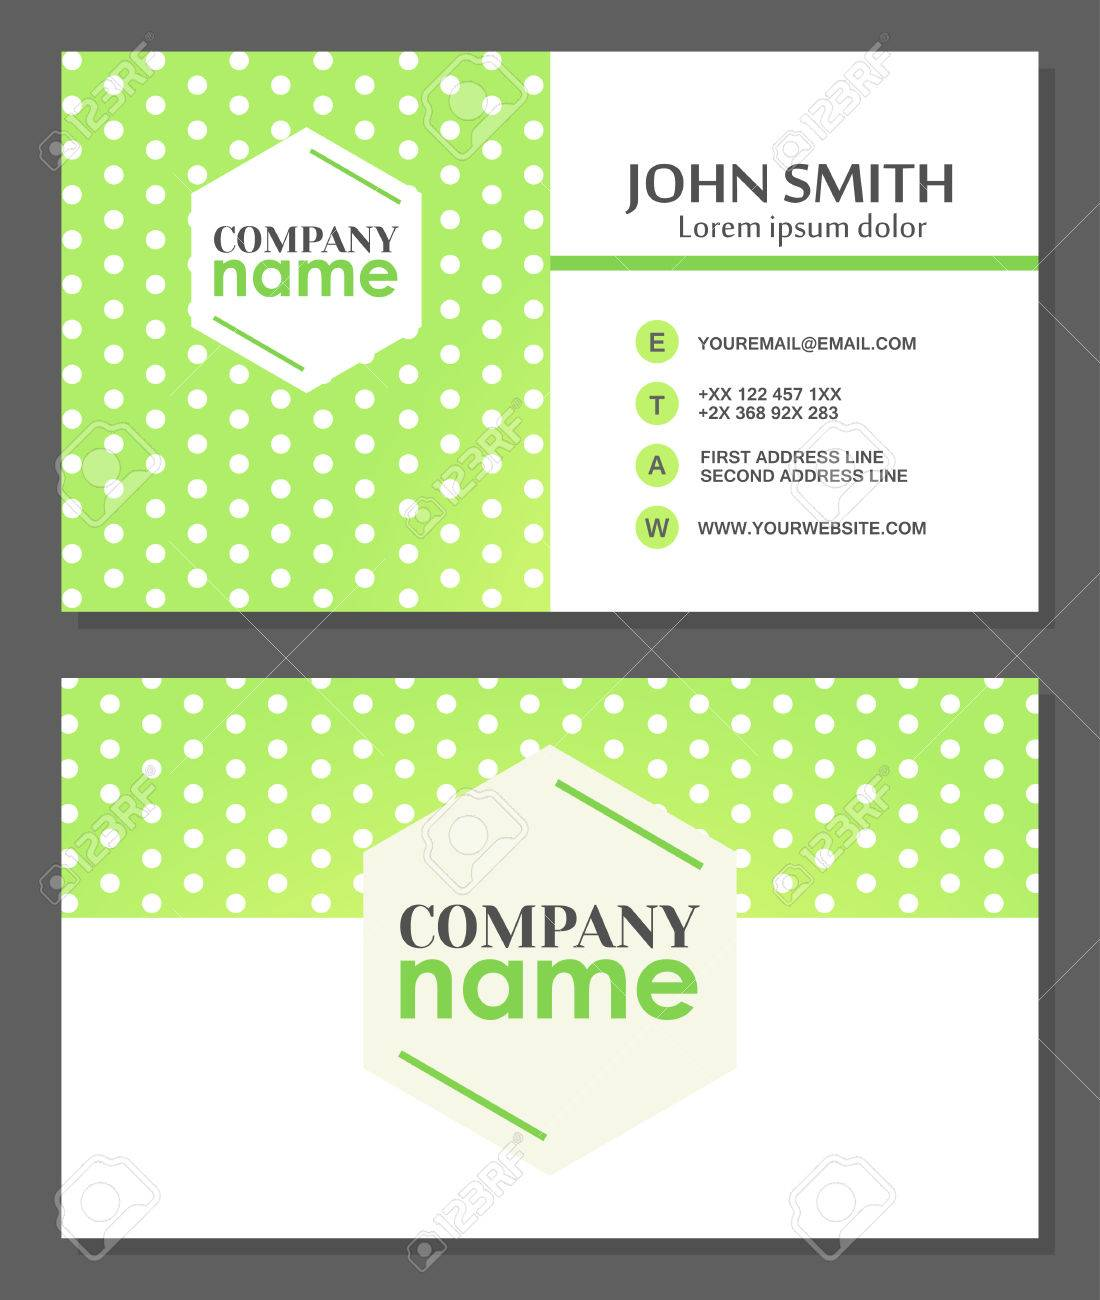 Business card template abstract business card design vector banco de imagens business card template abstract business card design vector illustration reheart Choice Image